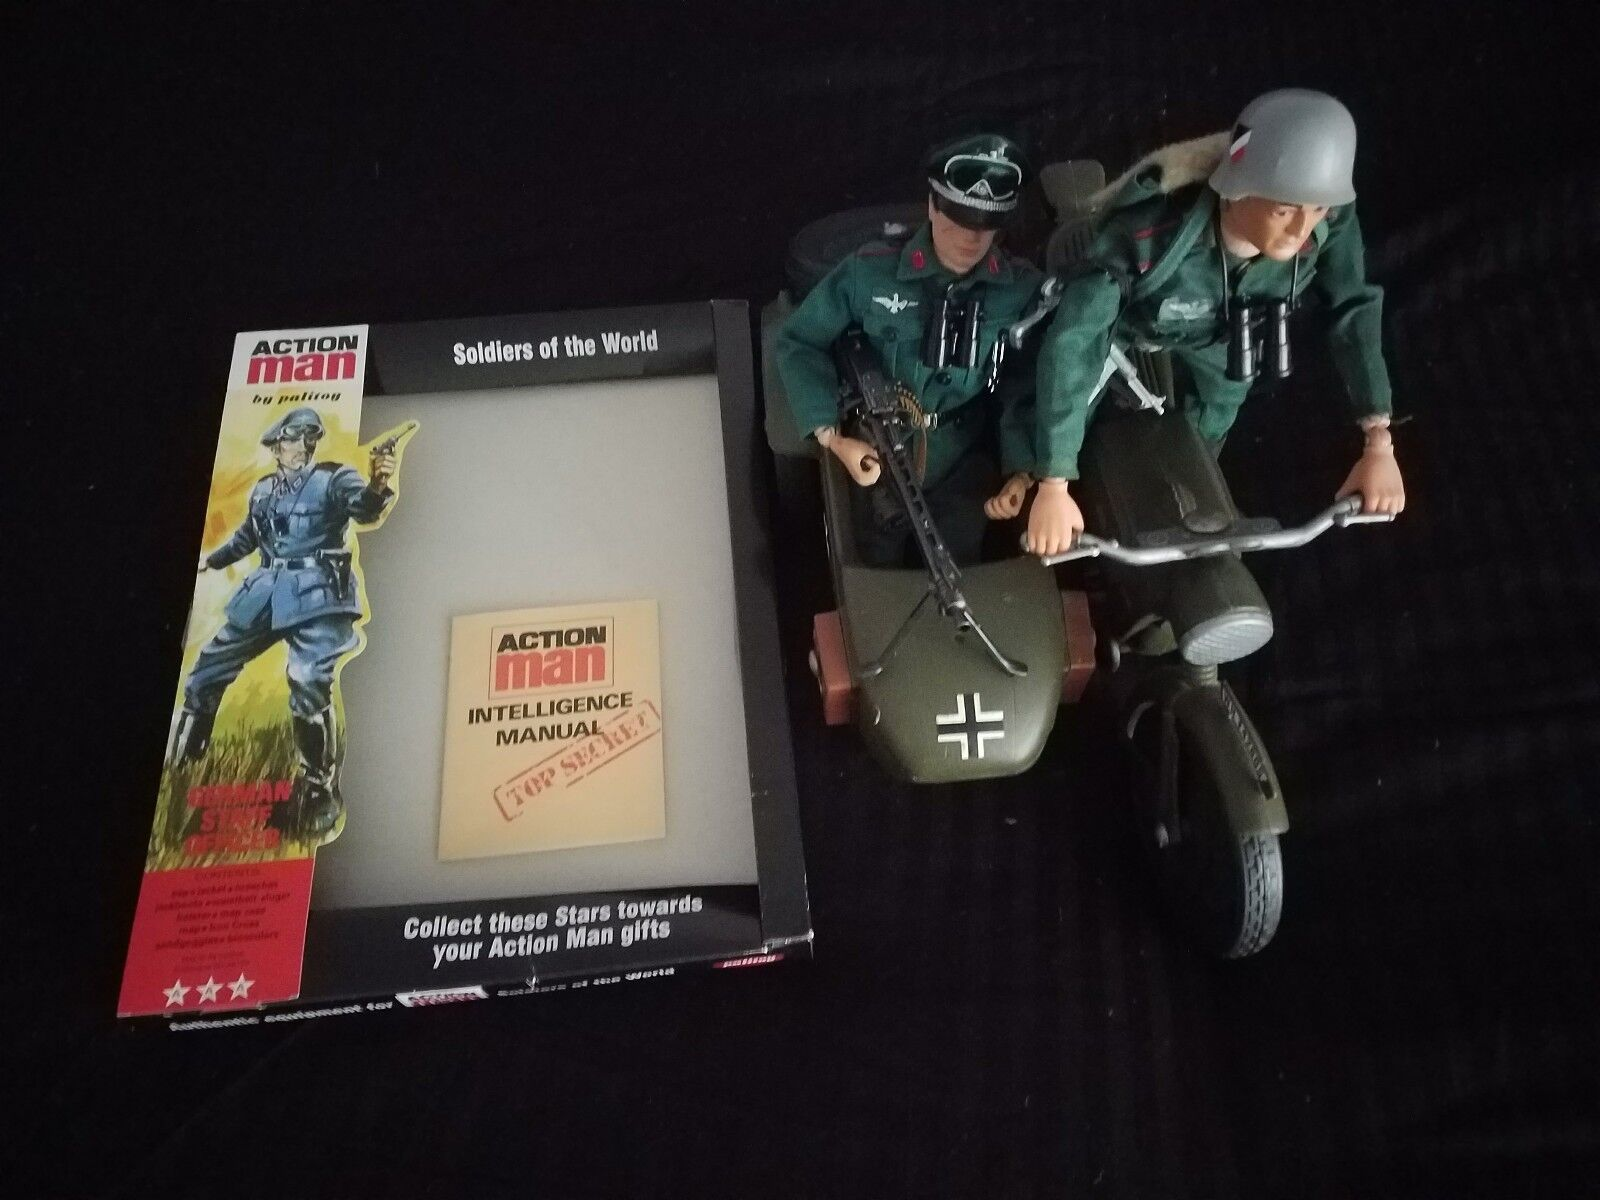 Action Man German Officer and German Stormtrooper with Motorcyle and Sidecar